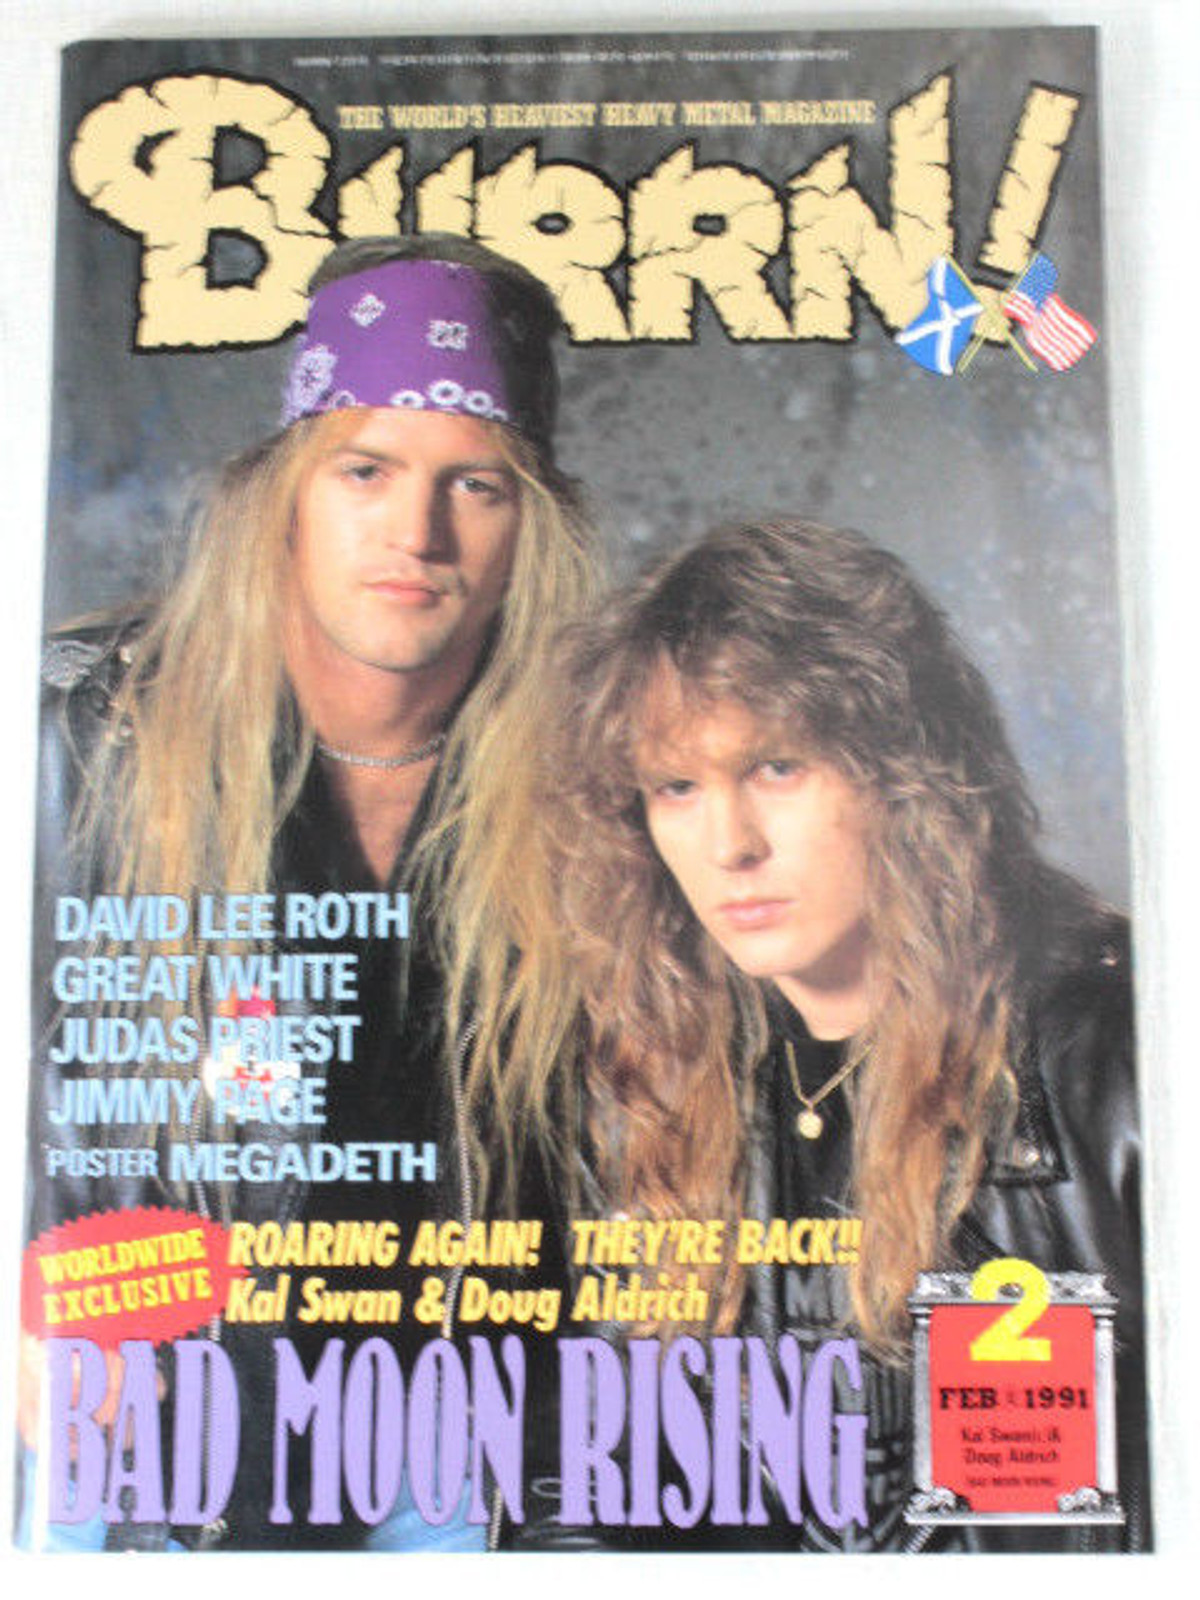 1991/02 BURRN! Japan Rock Magazine BAD MOON RISING/DAVID LEE ROTH/GREAT WHITE